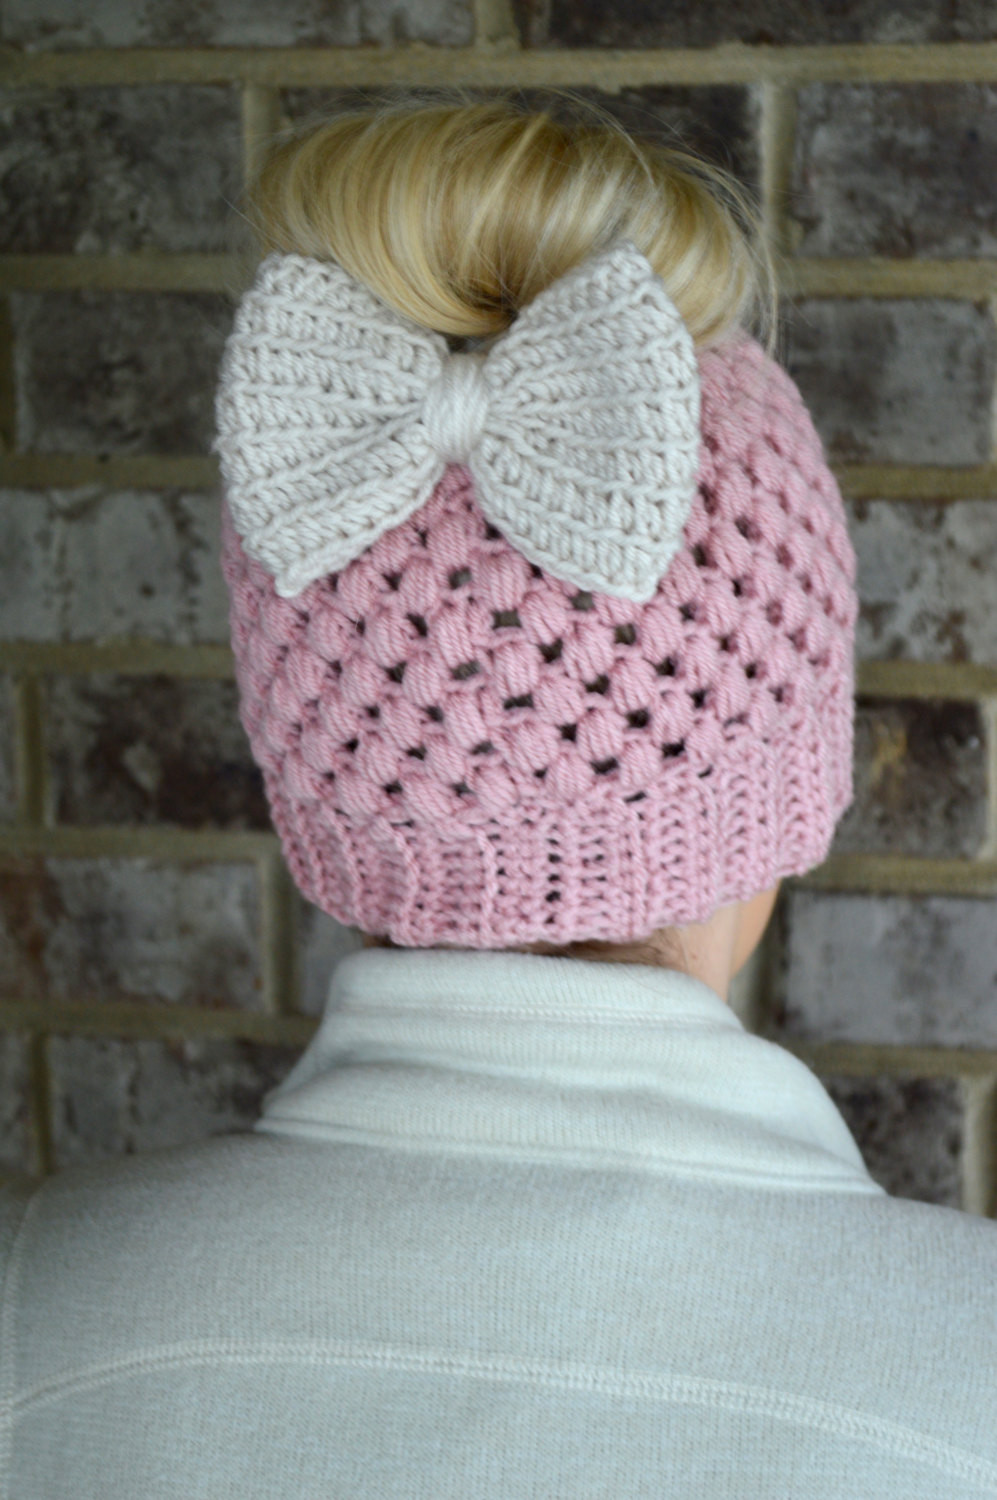 Beanie for Buns Best Of Messy Bun Beanie with Bow Bow Messy Bun Beanie top Knot Of Wonderful 42 Photos Beanie for Buns